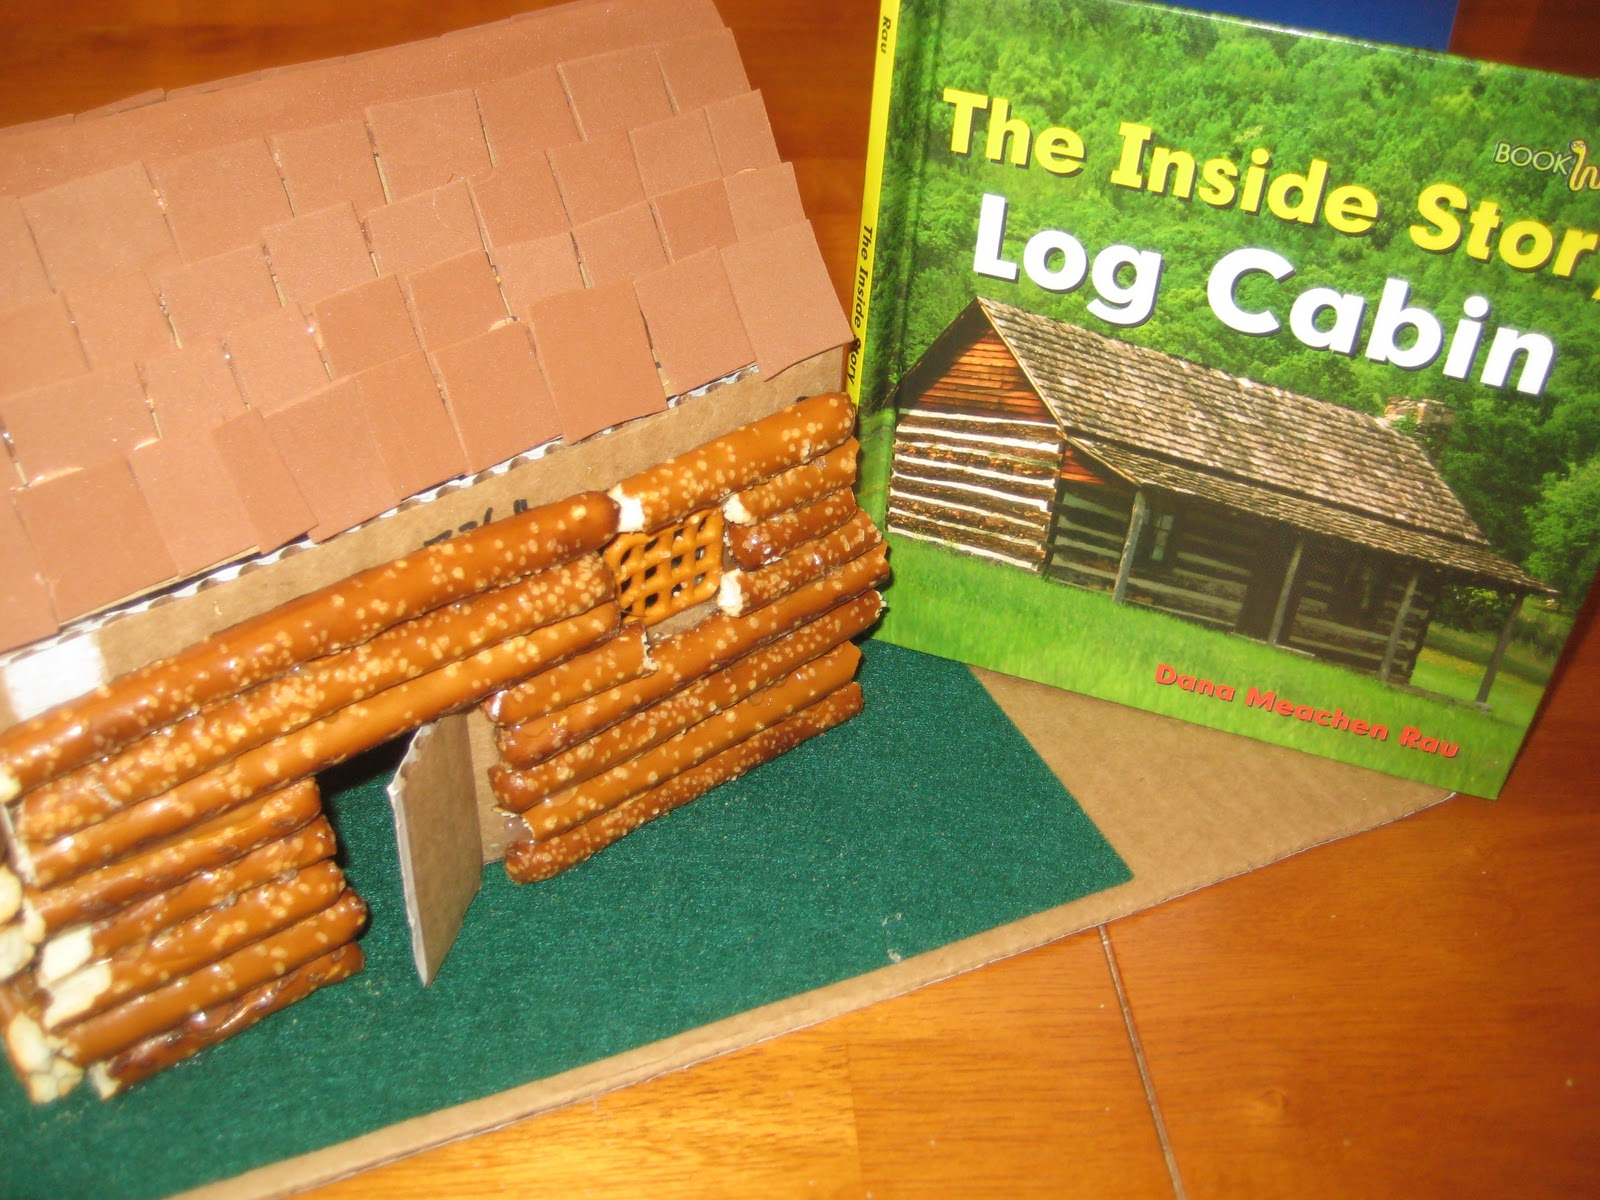 Relentlessly fun deceptively educational pretzel rod for Log cabin project